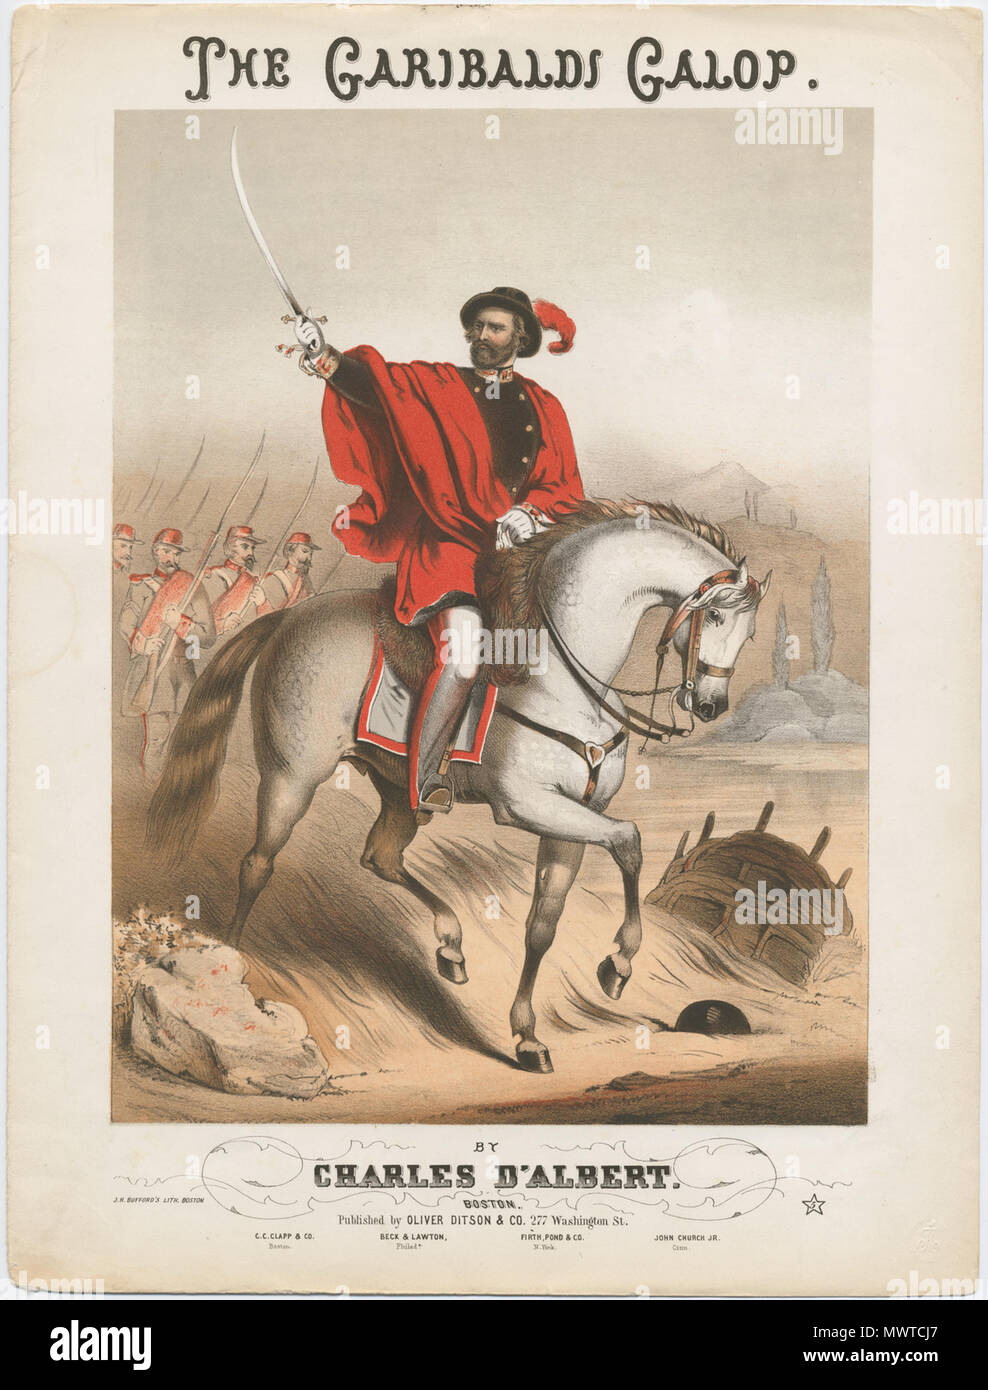 . English: Music cover sheet: Garibaldi on horseback, directed to right, with head turned to look to left, wearing a plumed hat and red drape around his shoulders over a double-breasted black coat, his right arm outstretched, holding up a sword in his hand, followed by a group of armed soldiers at left; basket at right, a lake or river behind, trees on the opposite shore, and hills in the distance; outer border surrounding image. Lithograph, printed in colour, with additional hand-colouring . 1841-1863 (circa). Print made by John Brandard 596 The Garibaldi Galop. - Stock Image